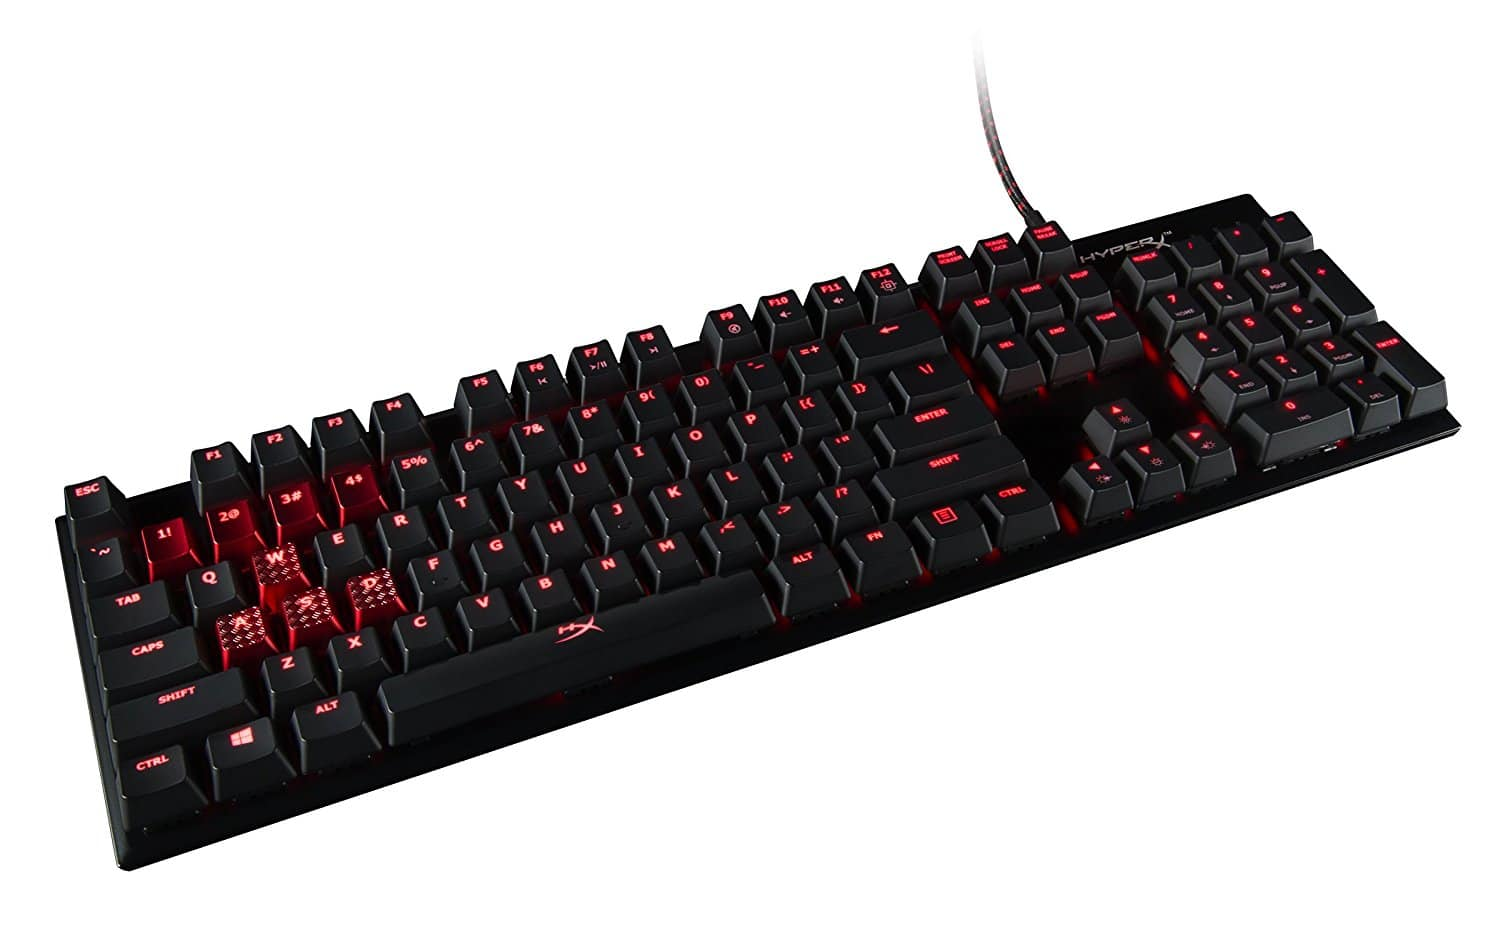 HyperX Alloy FPS Mechanical Gaming Keyboard (Cherry MX Blue Switches) $80 + FREE SHIPPING